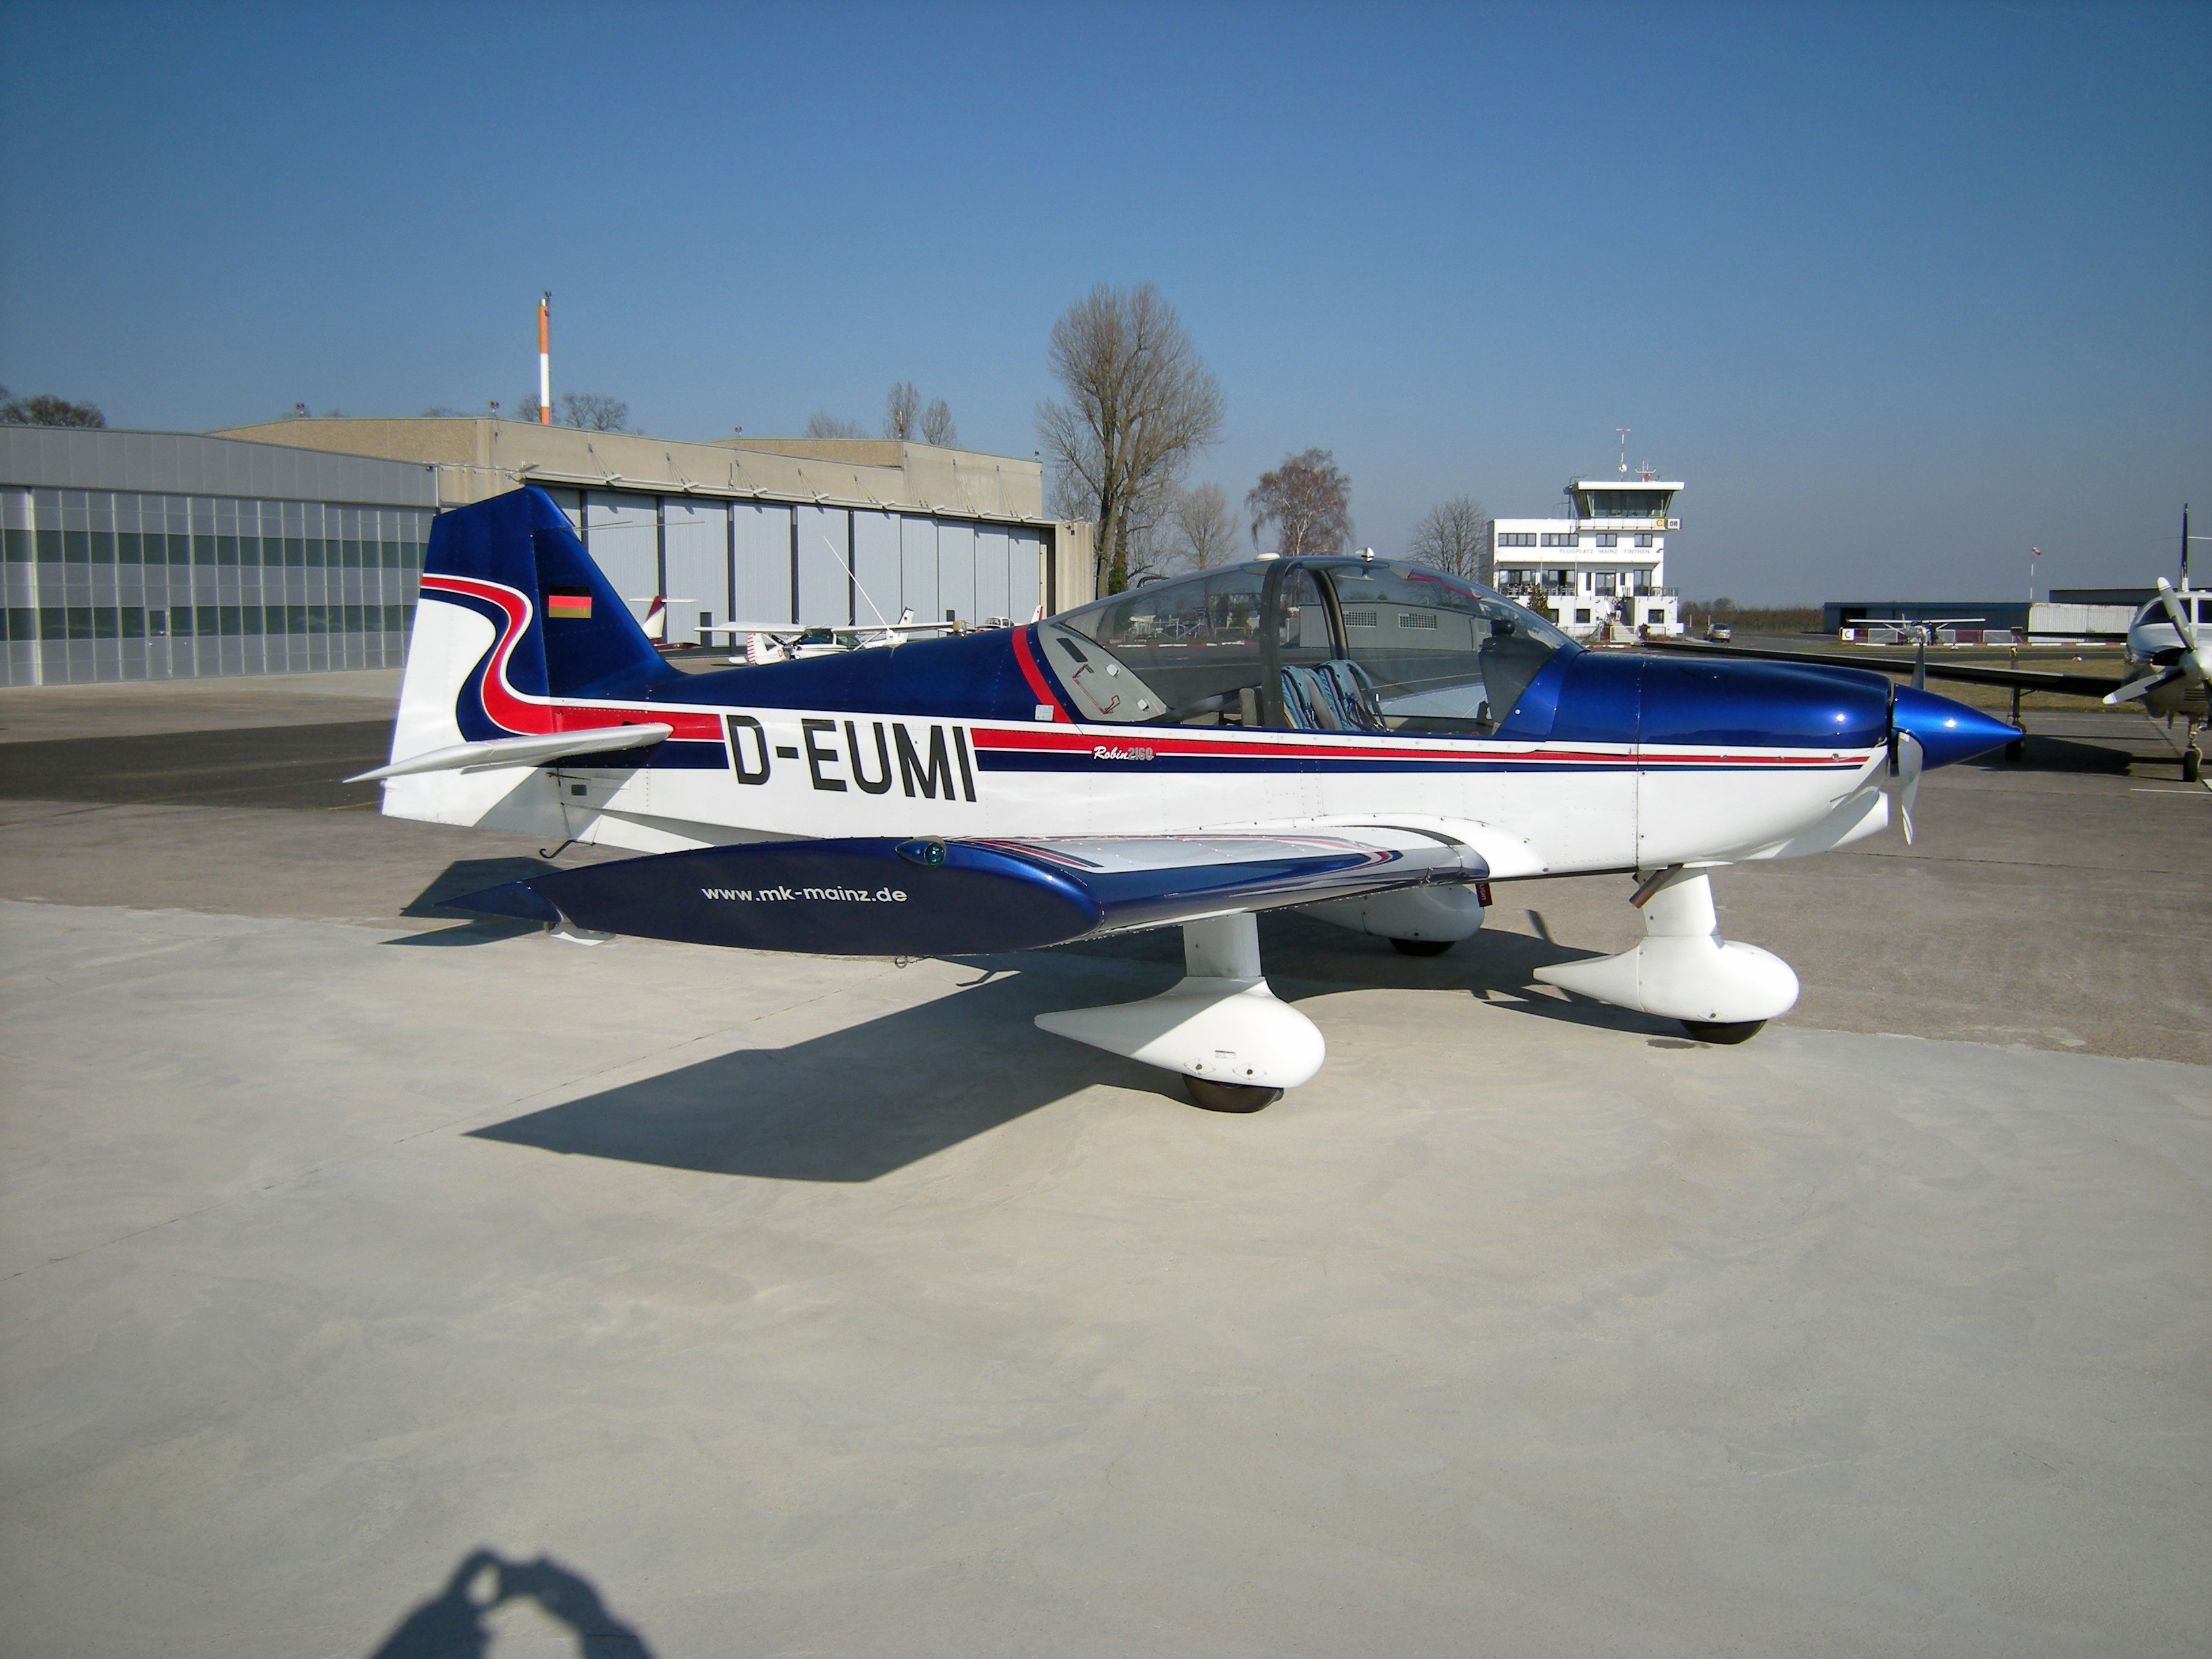 Robin R2160 aerobatic trainer. Picture courtesy Motor-Kunstflugschule, Mainz, Germany.